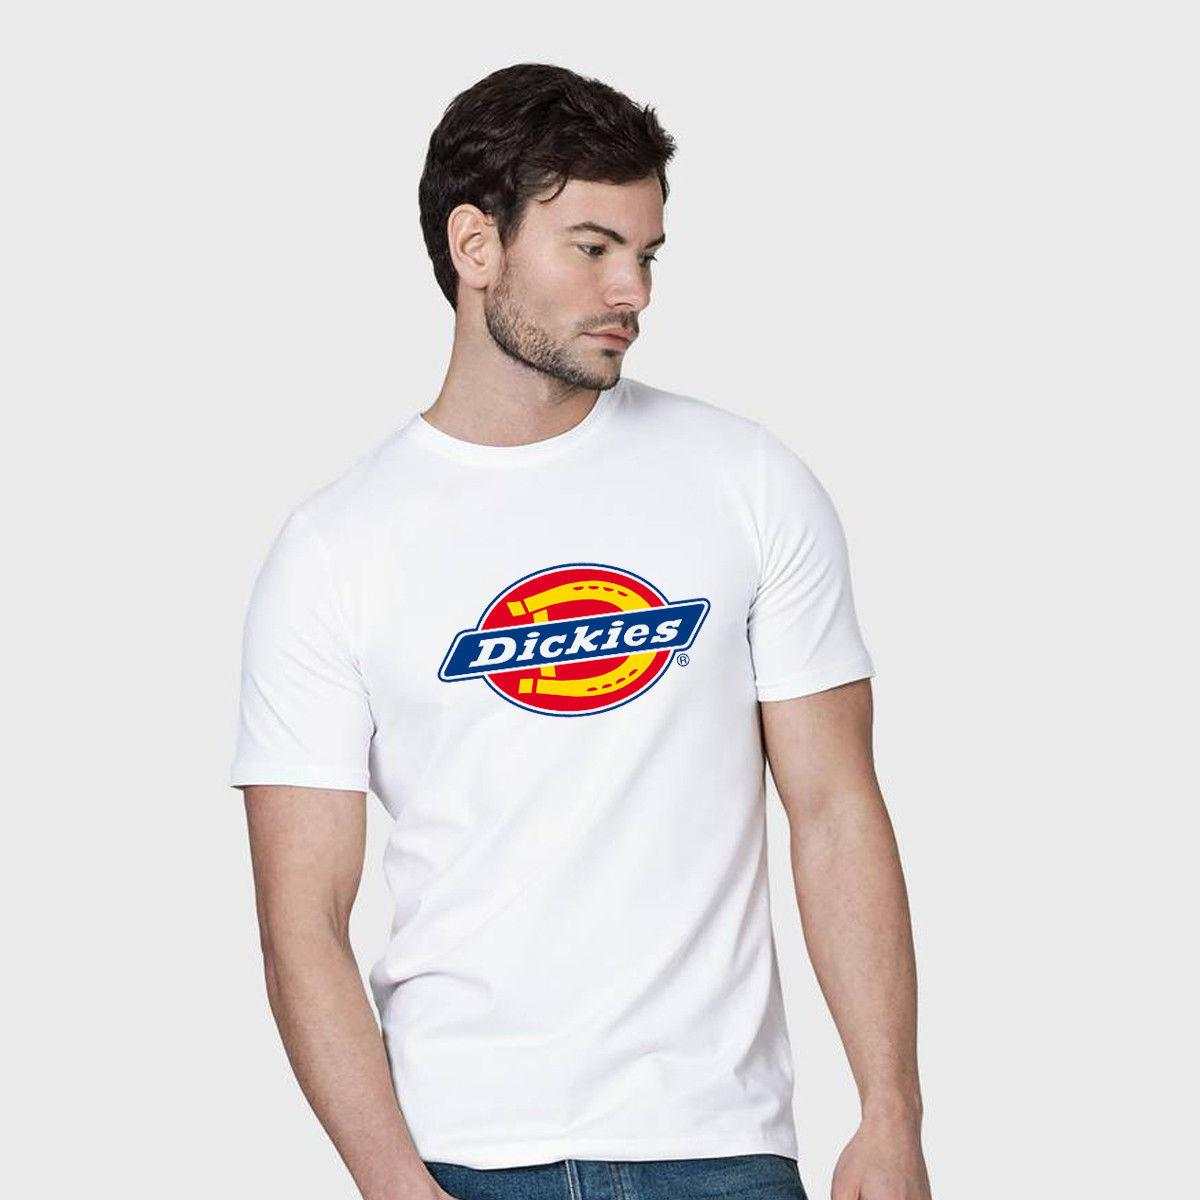 b9979fe8f DICKIES LOGO FAMOUS BRAND men white tshirt 100% cotton short sleeve summer  Hot Sale New Tee Print Men T-Shirt Top